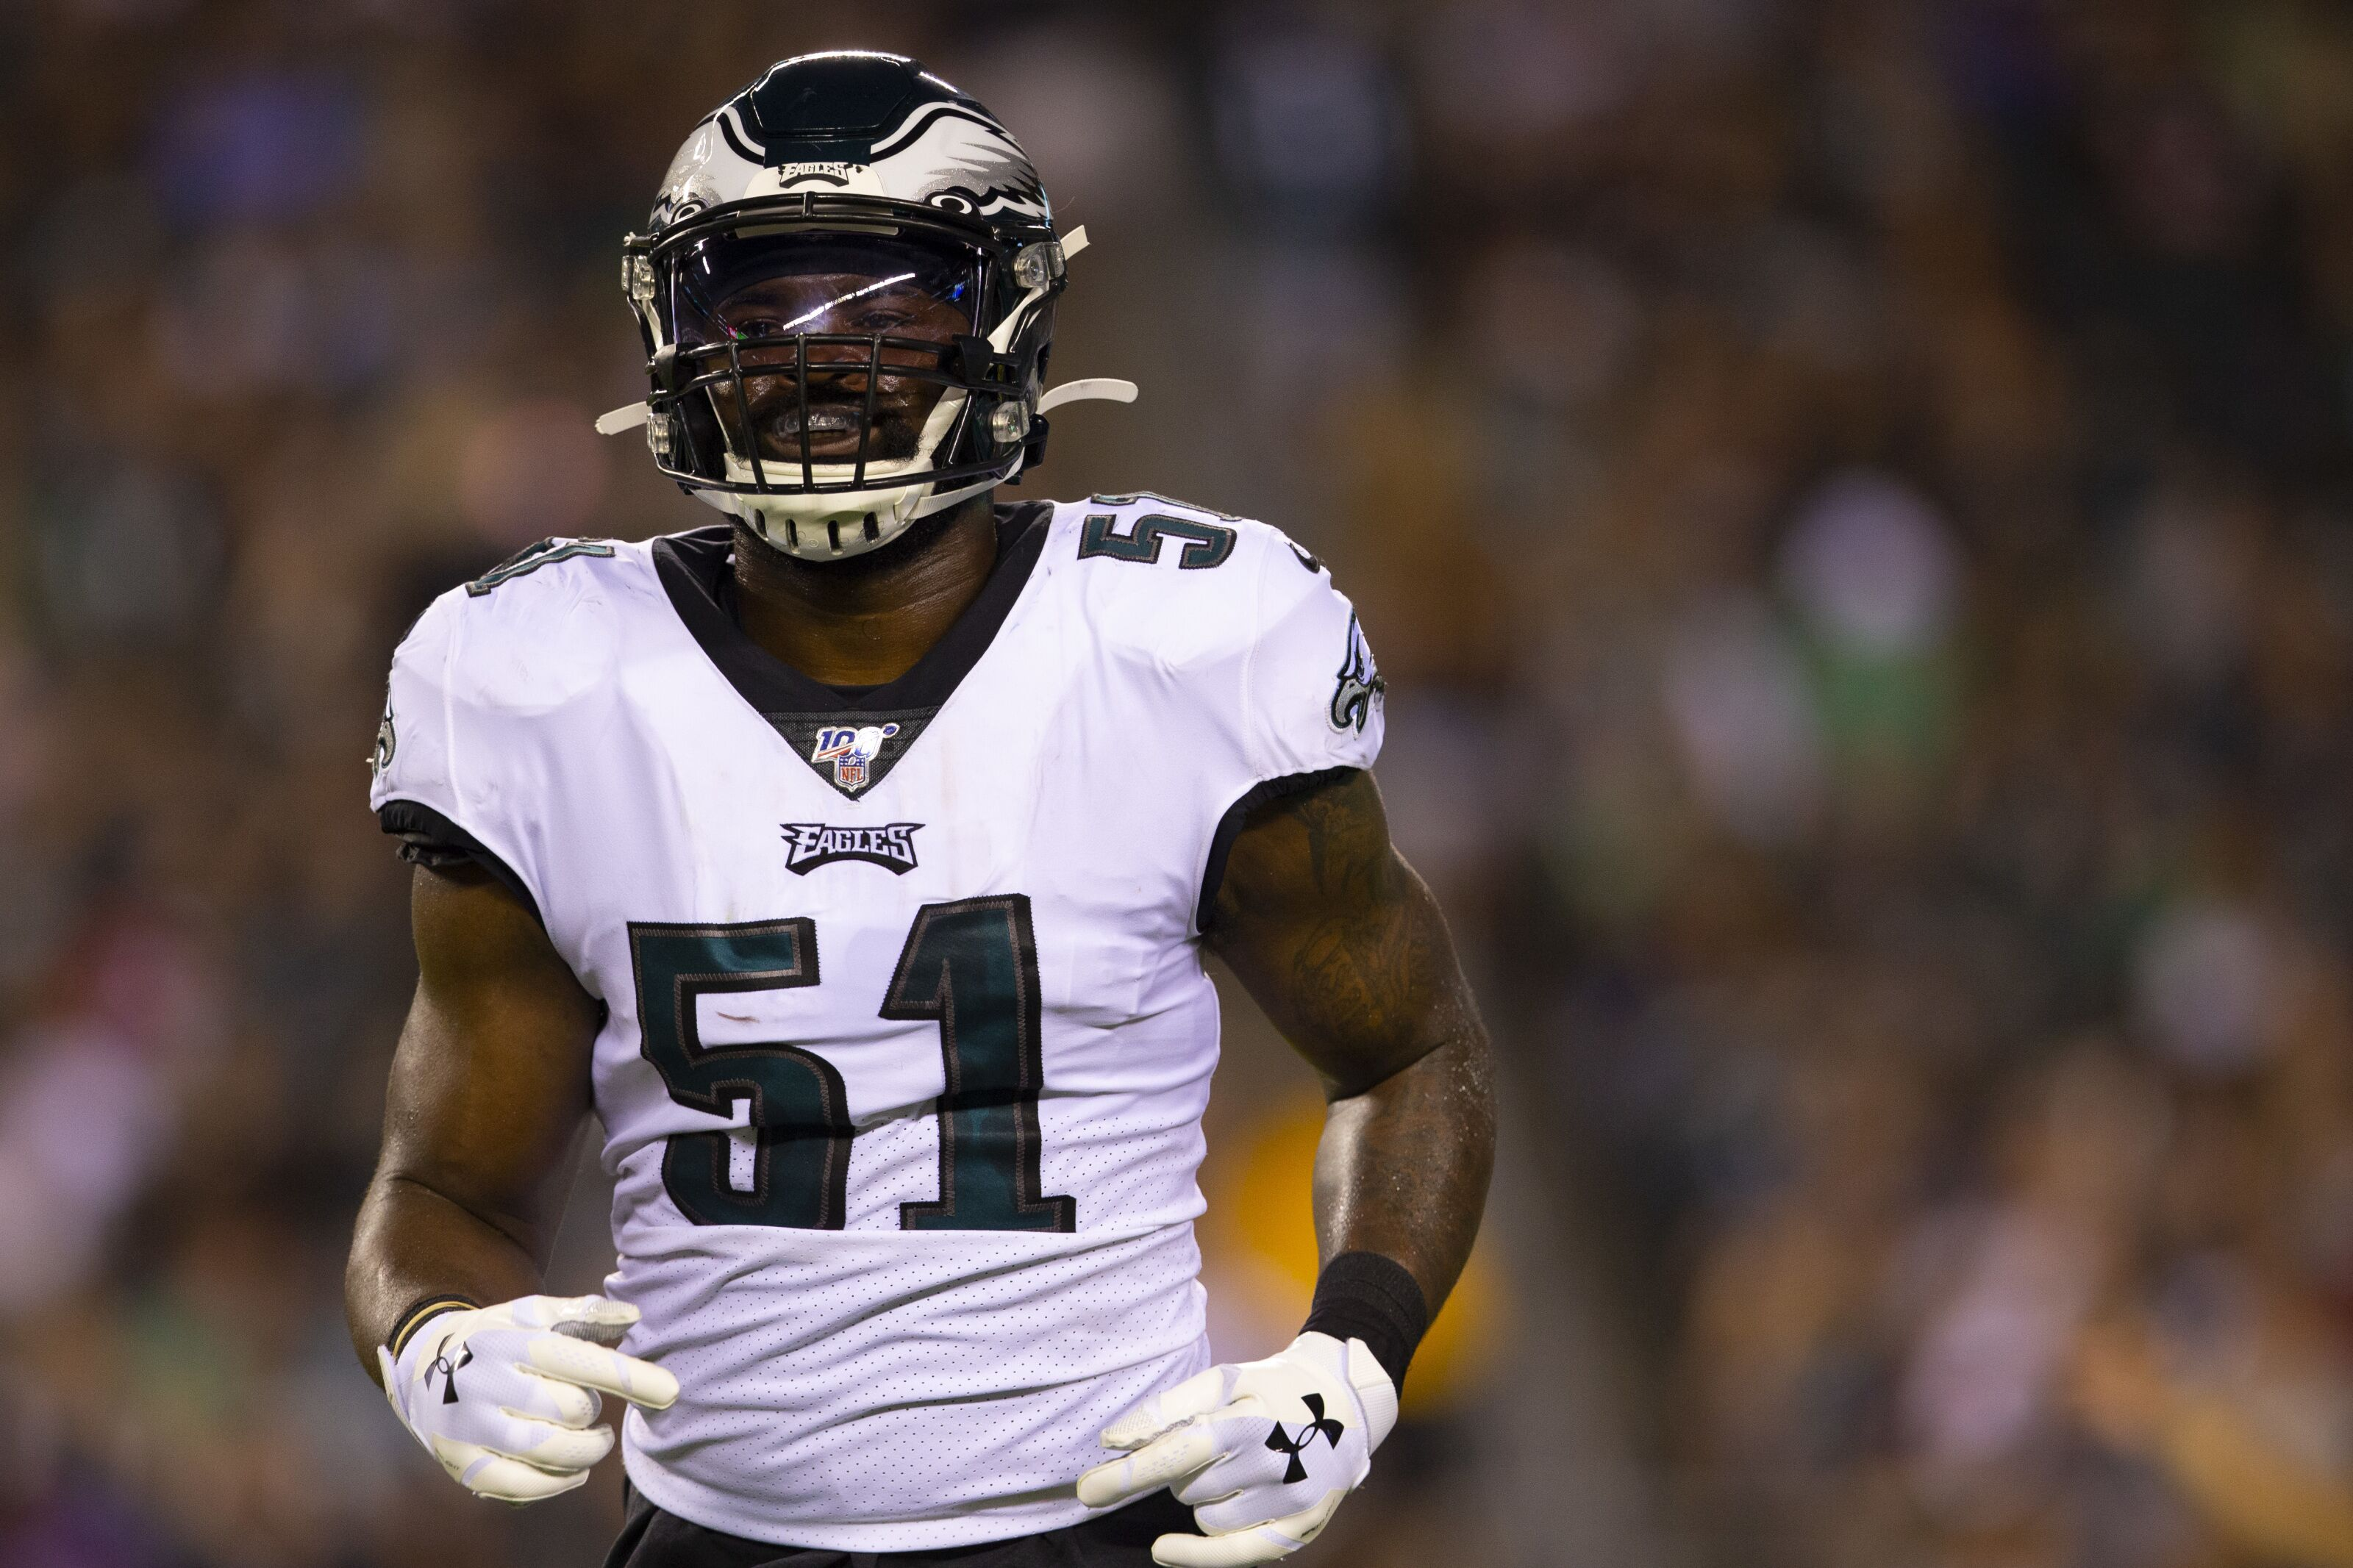 Eagles' Zach Brown released after a rough 24 hours